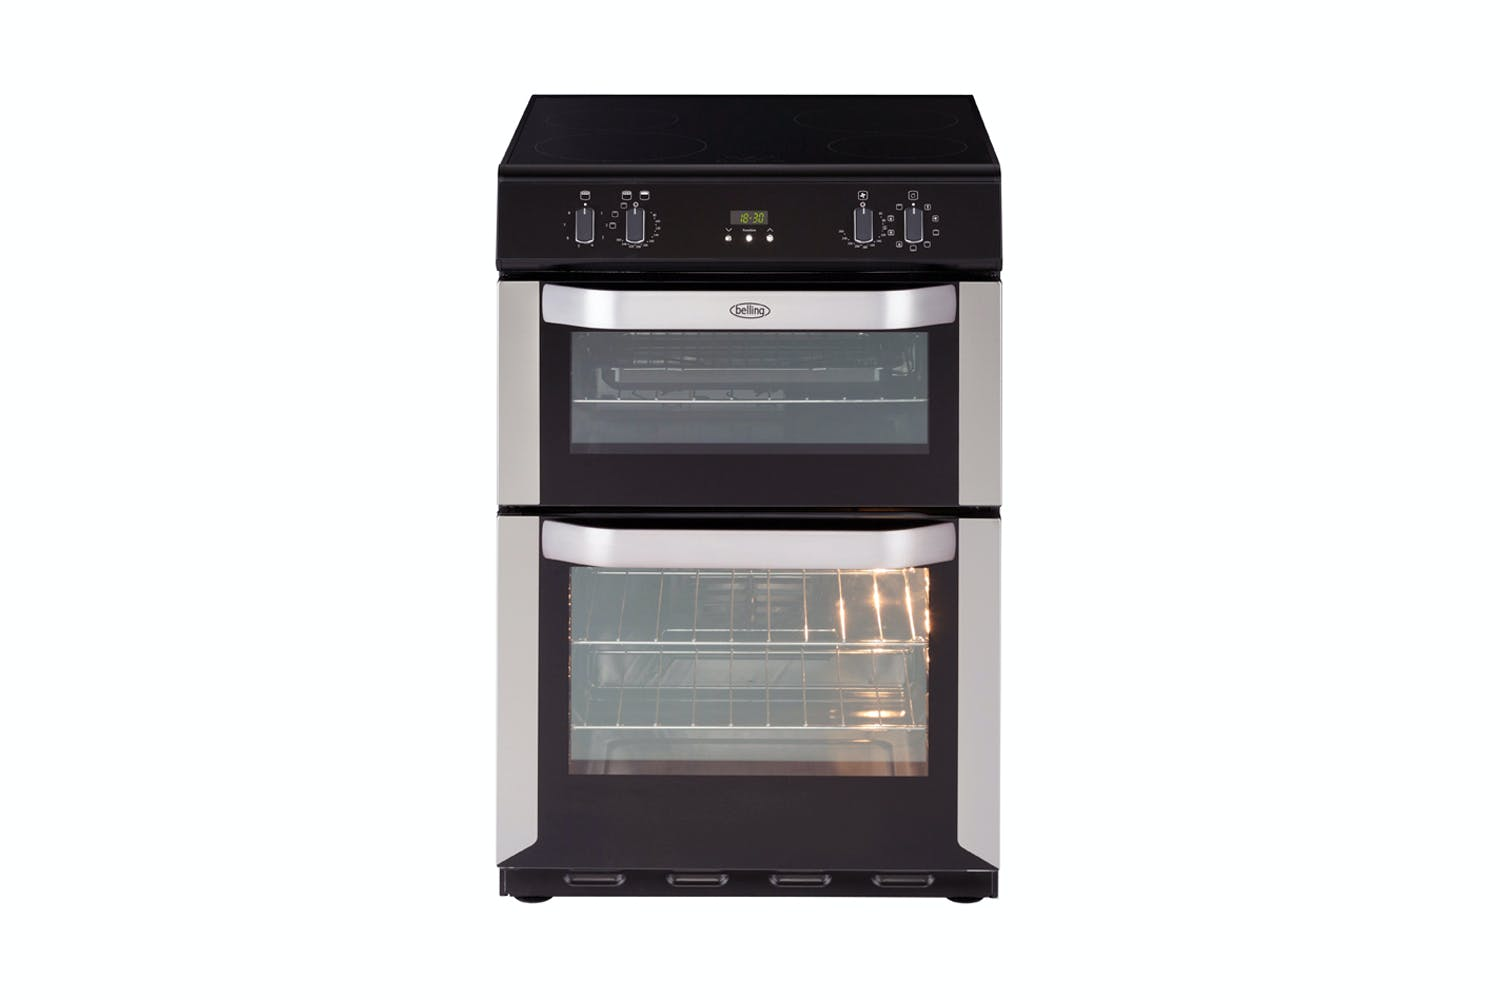 Belling 60cm Freestanding Double Oven With Induction Cooktop Cooker Circuit Board Buy Harvey Norman New Zealand